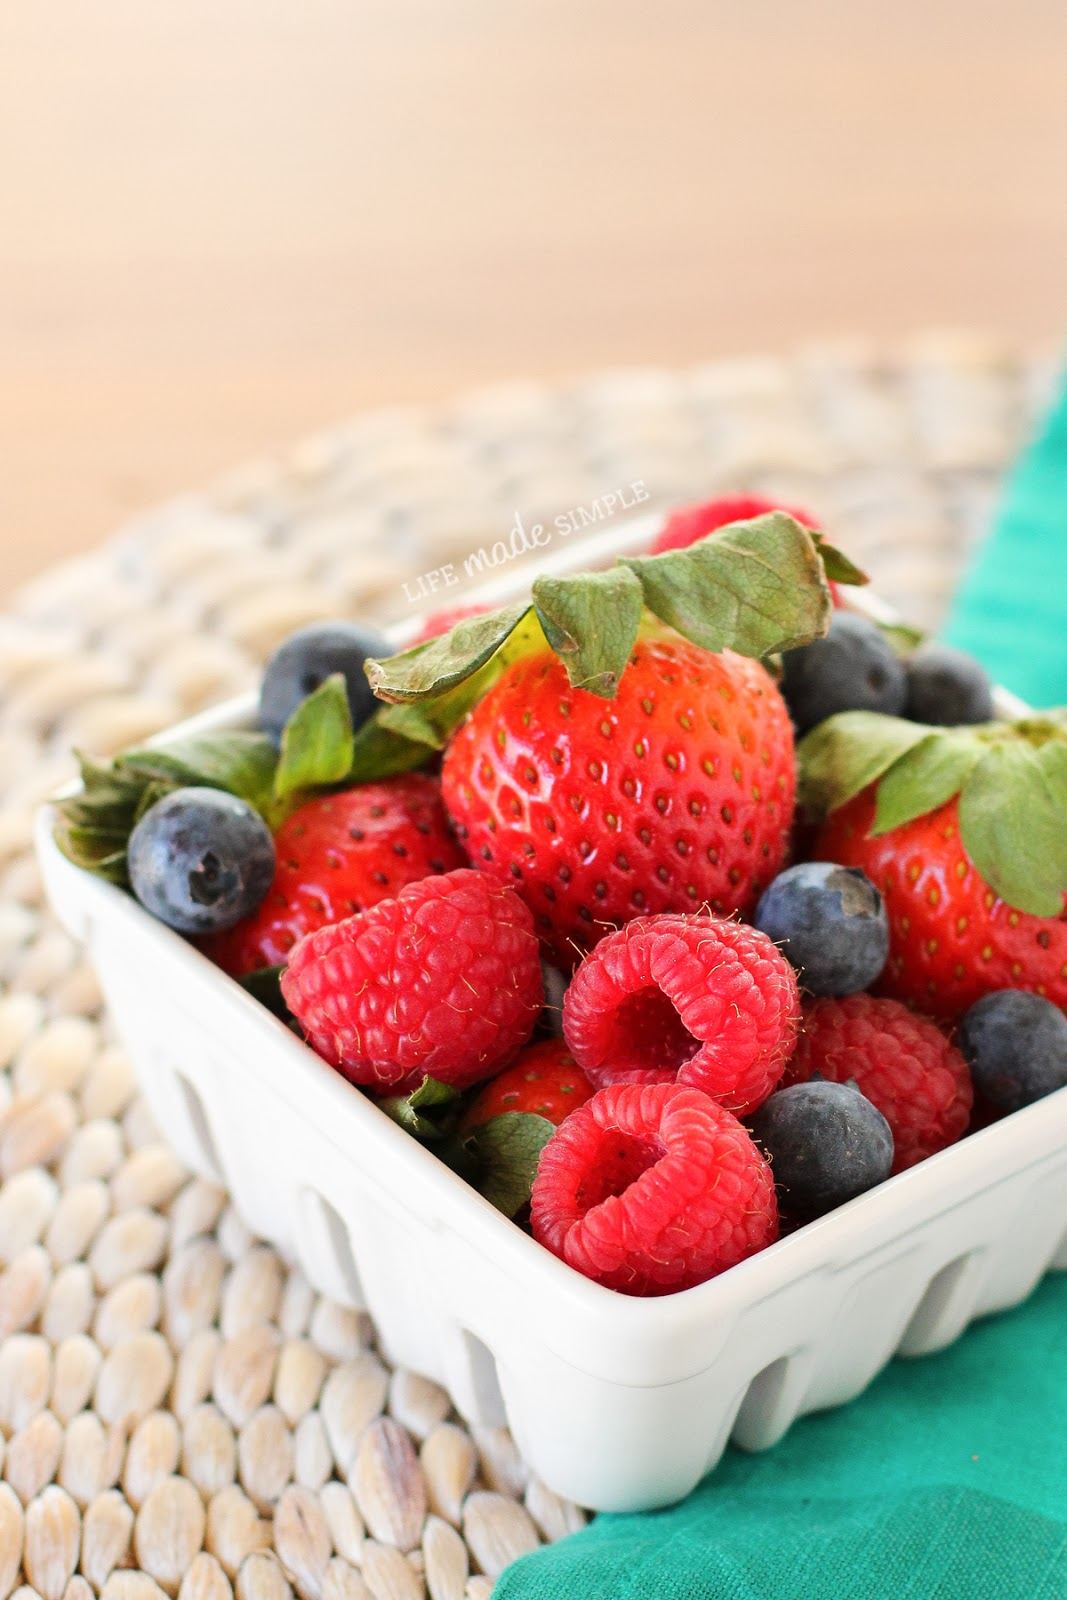 Strawberries, blueberries and raspberries in dish